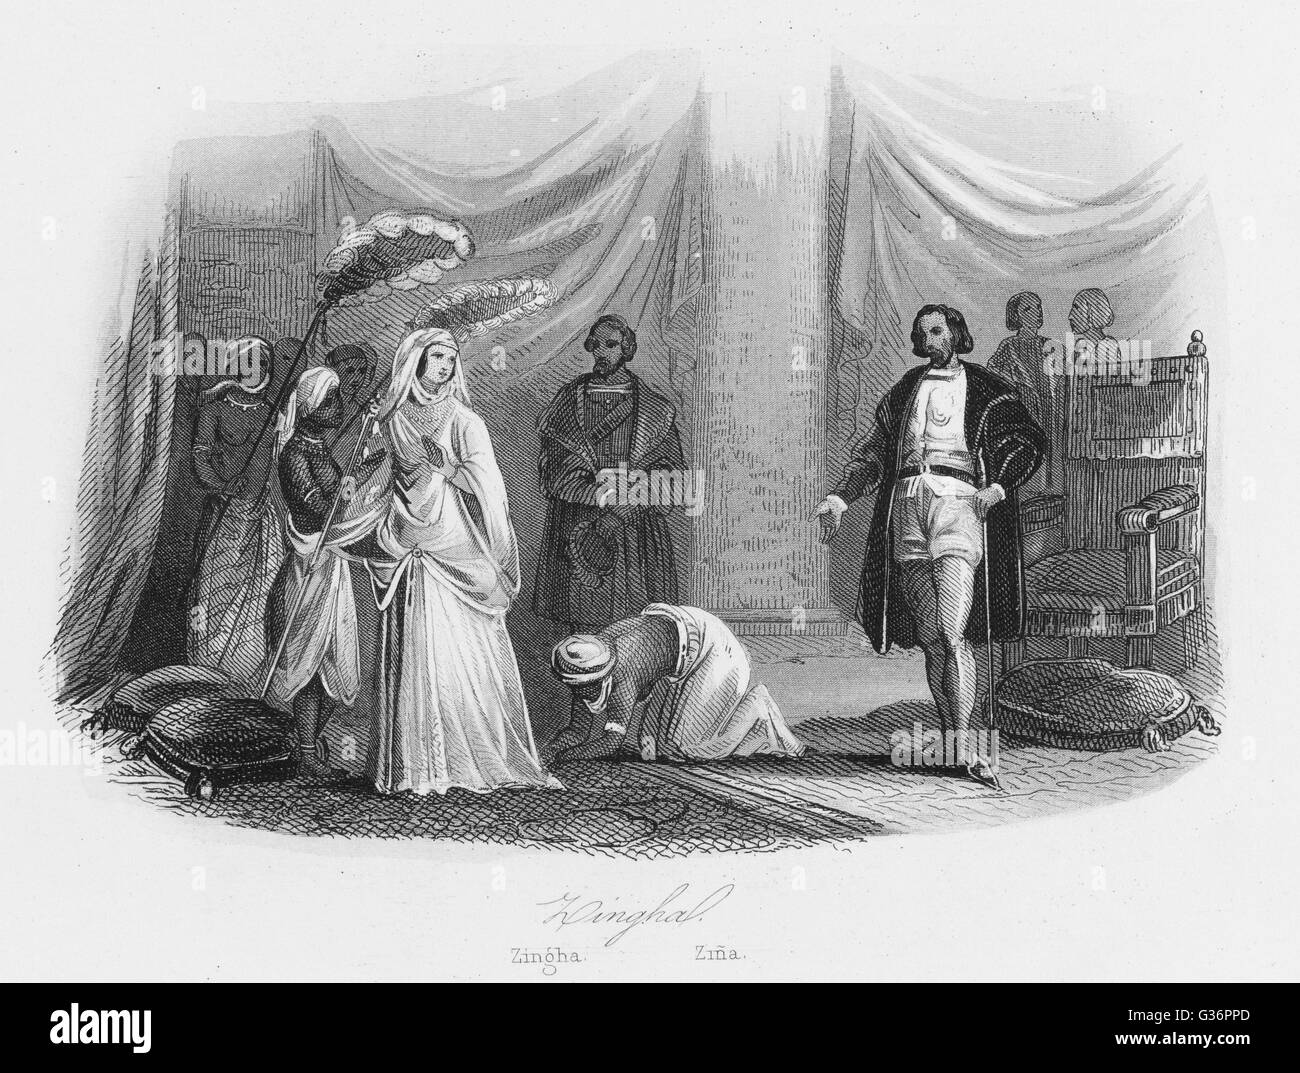 Anna Nzinga, Princess of Angola, West Africa, makes peace with Portugal and converts to Christianity, renaming herself Stock Photo